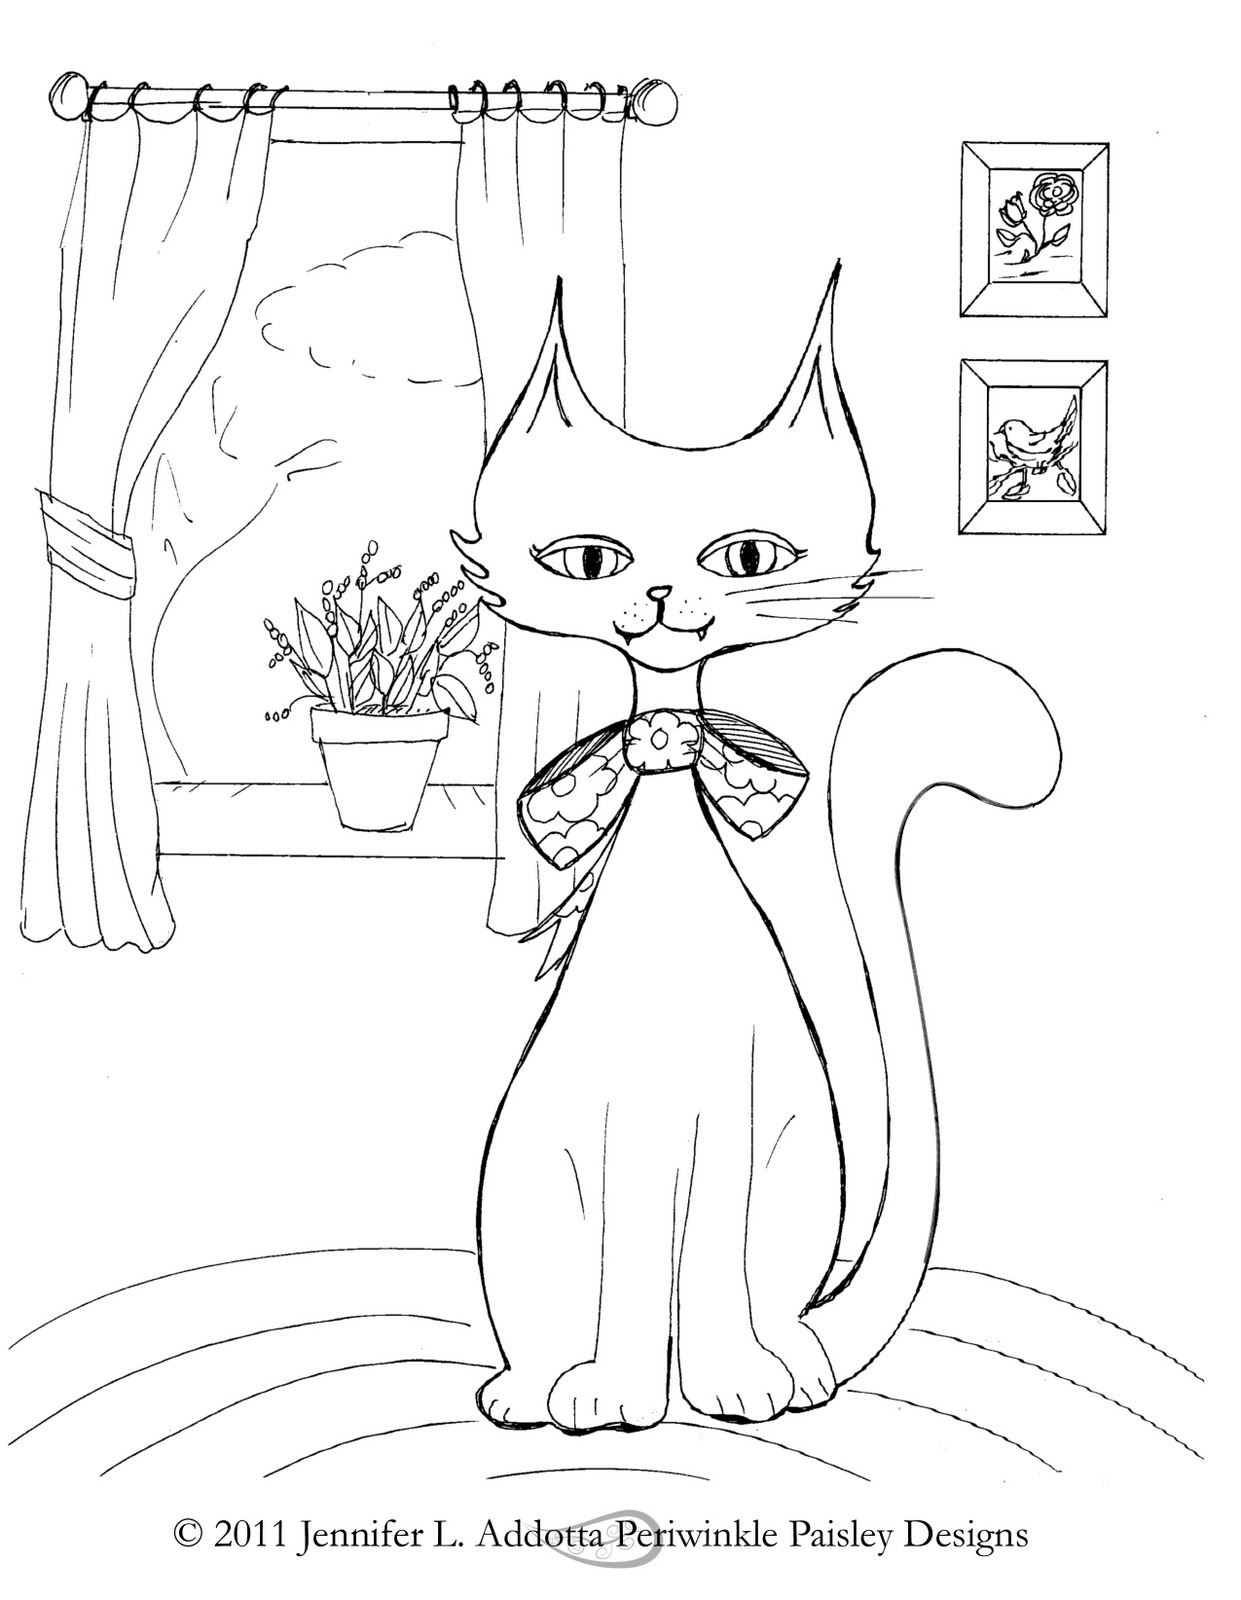 Pickle coloring book pages ~ Pickle Coloring Coloring Pages